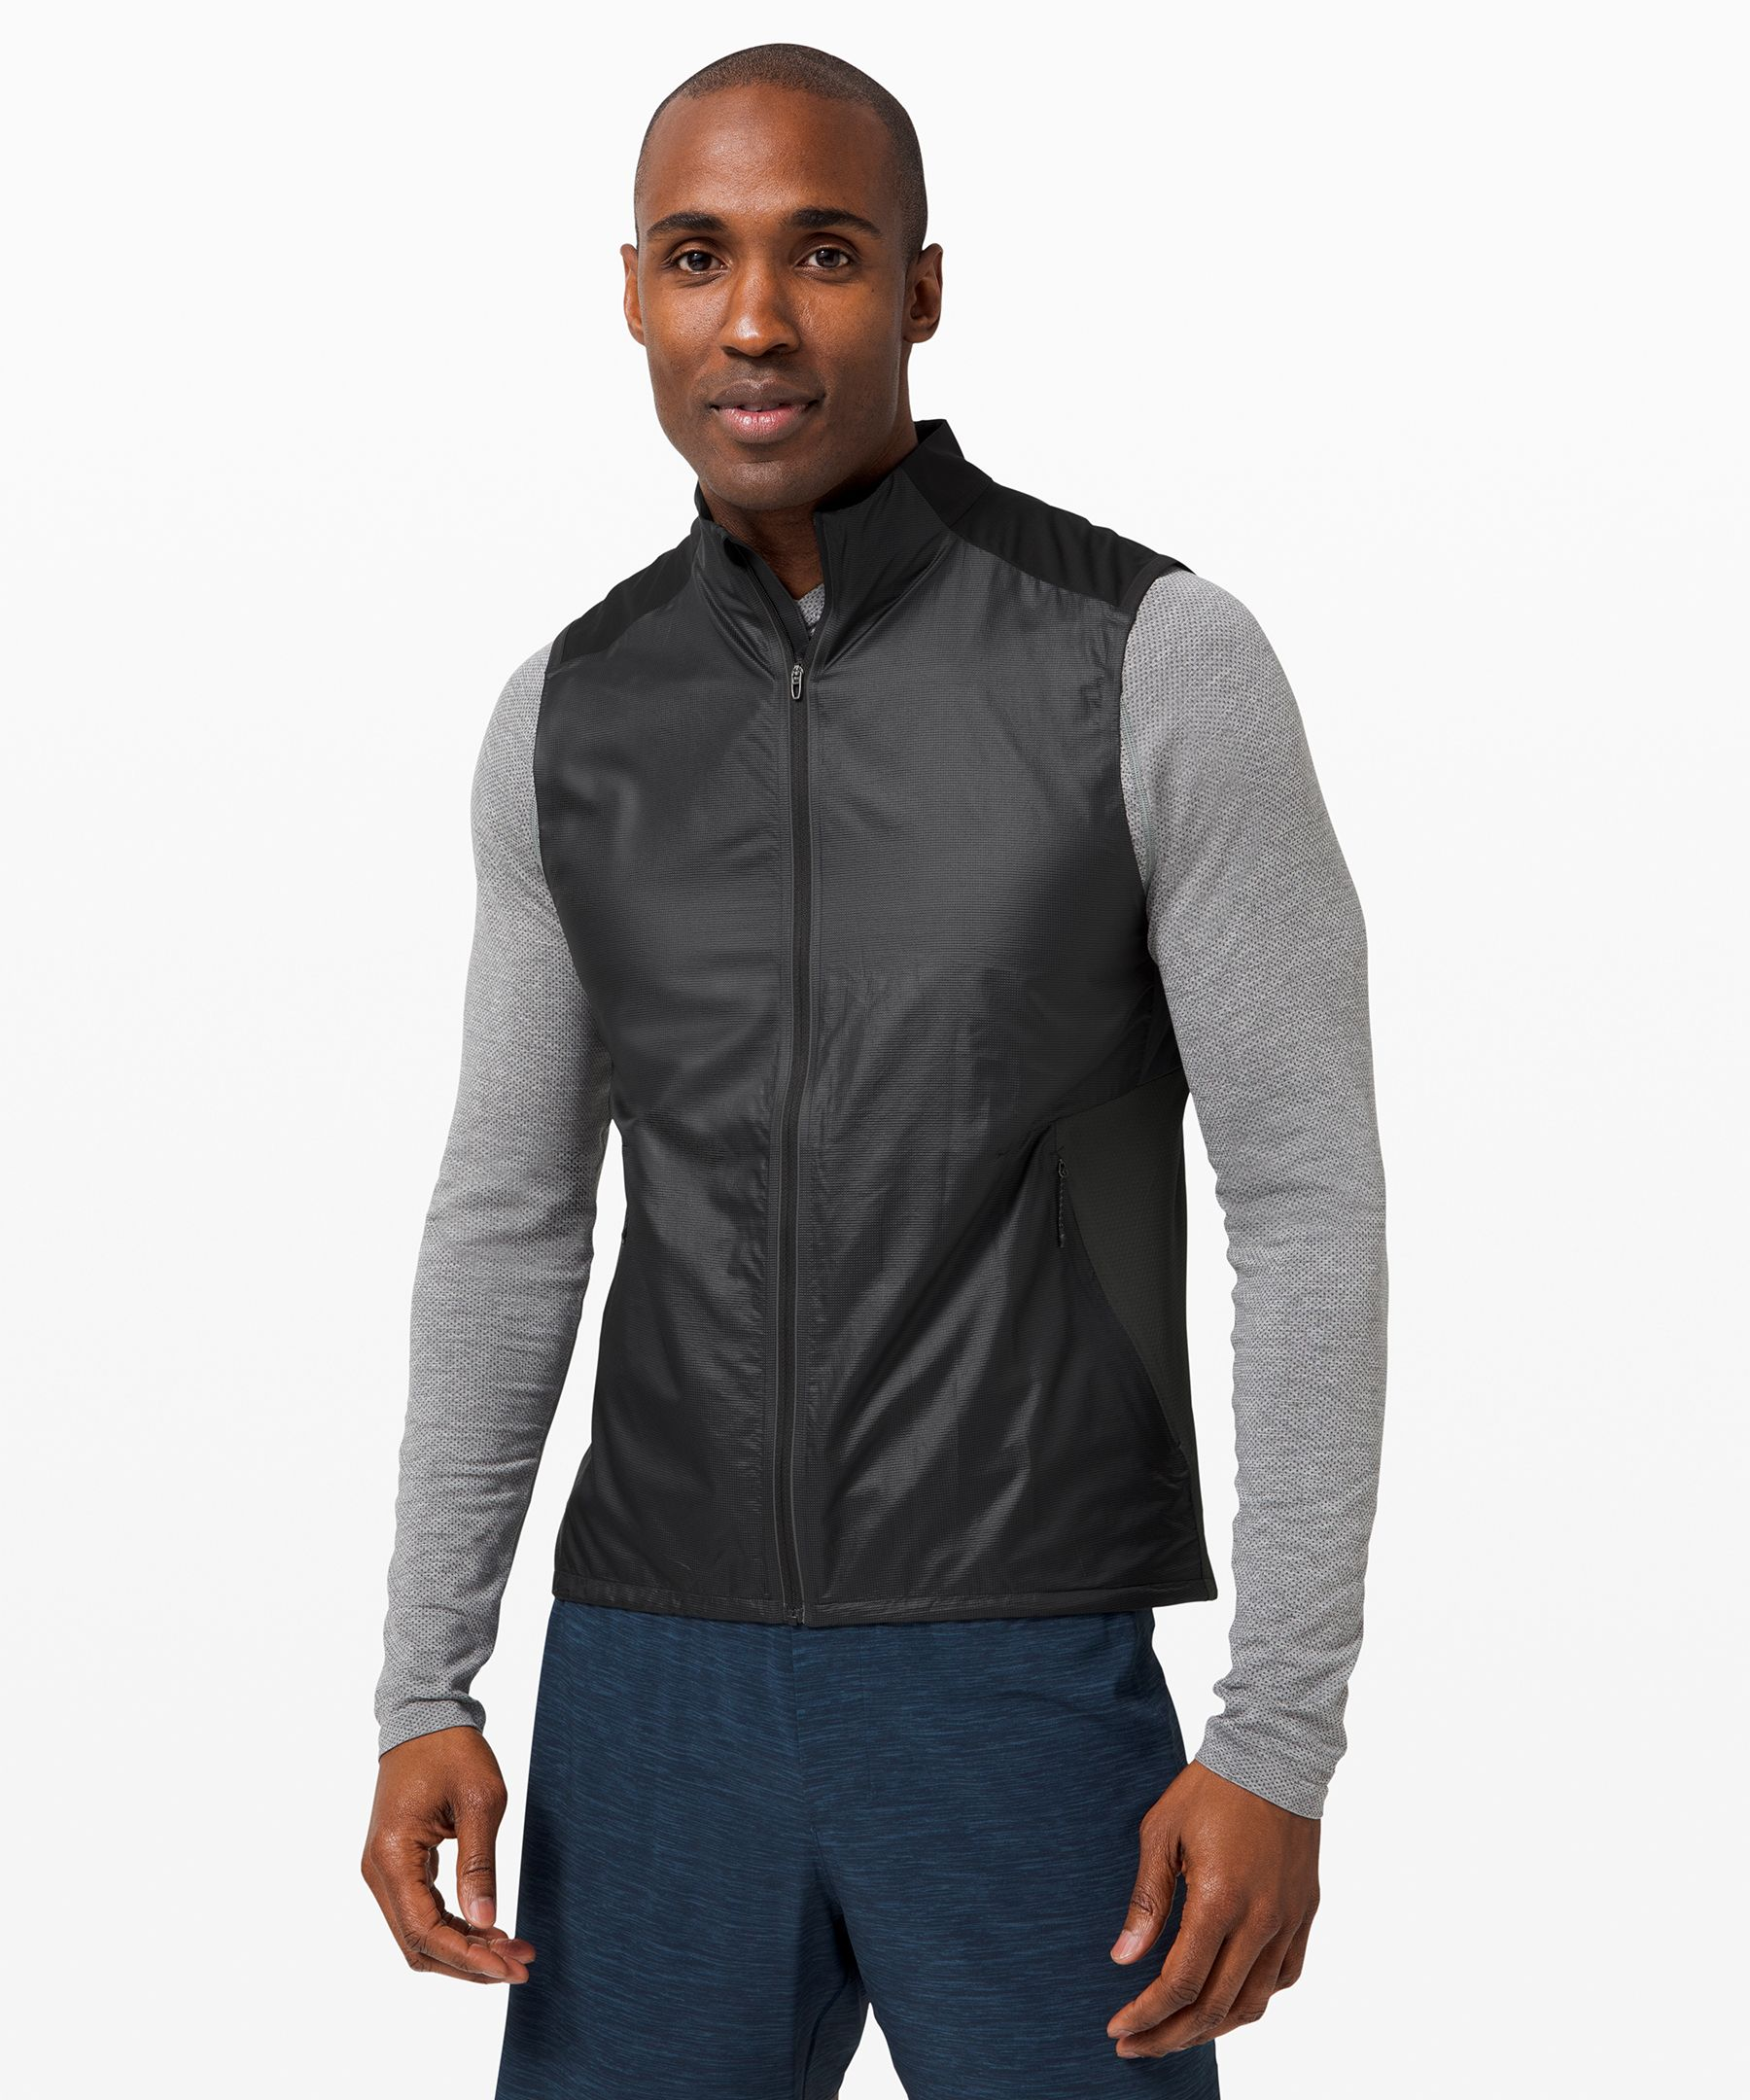 Power through your last mile  with nothing holding you back.  Designed to be your optimum  running layer with a fit  that\\\'s made to move, this vest  is made from water-repellent  fabric on the front to protect  your core, and a Mesh fabric  back to let your body breathe.